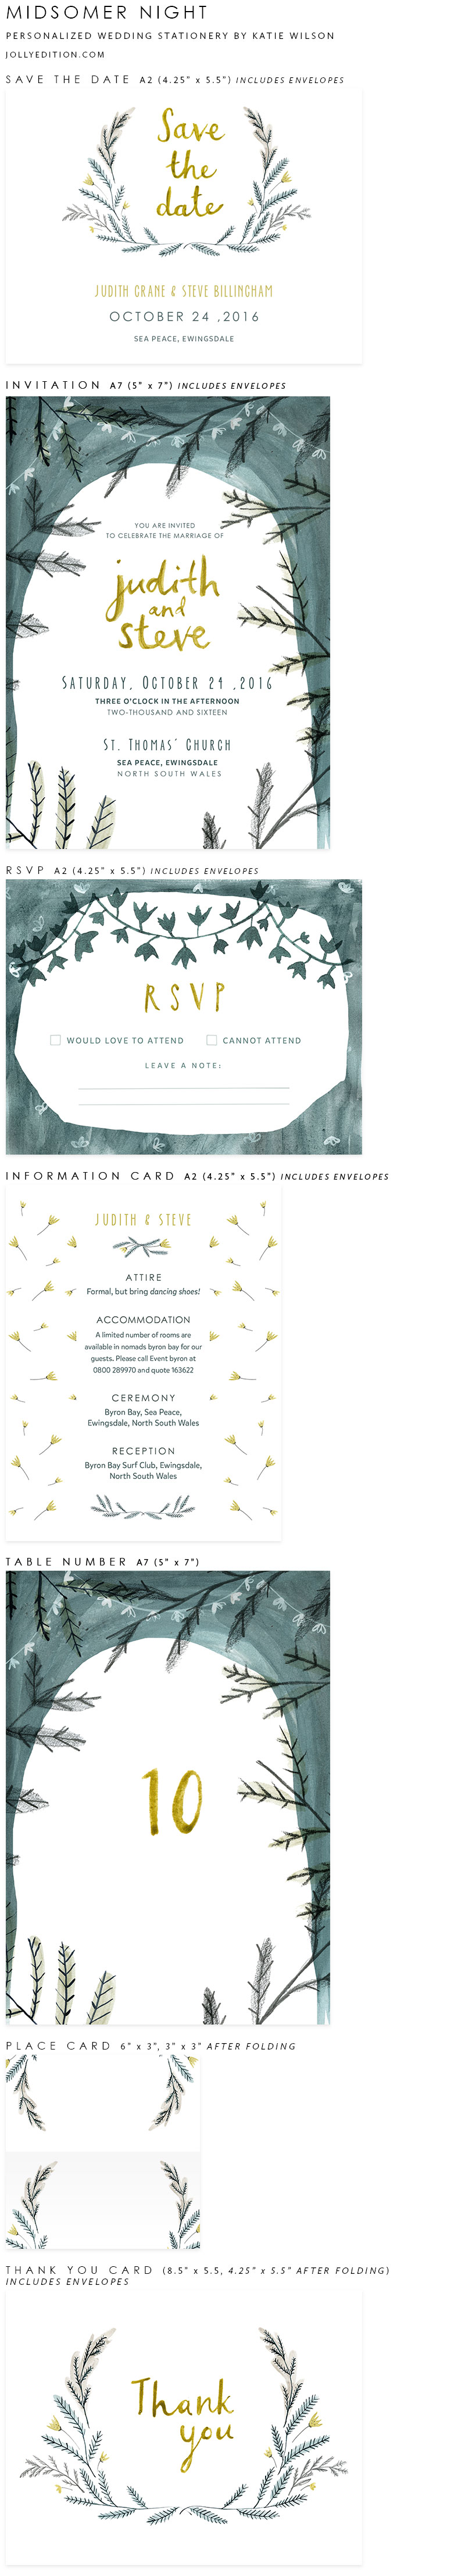 Midsomer Night Personalized Wedding Stationery by Katie Wilson of Jolly Edition